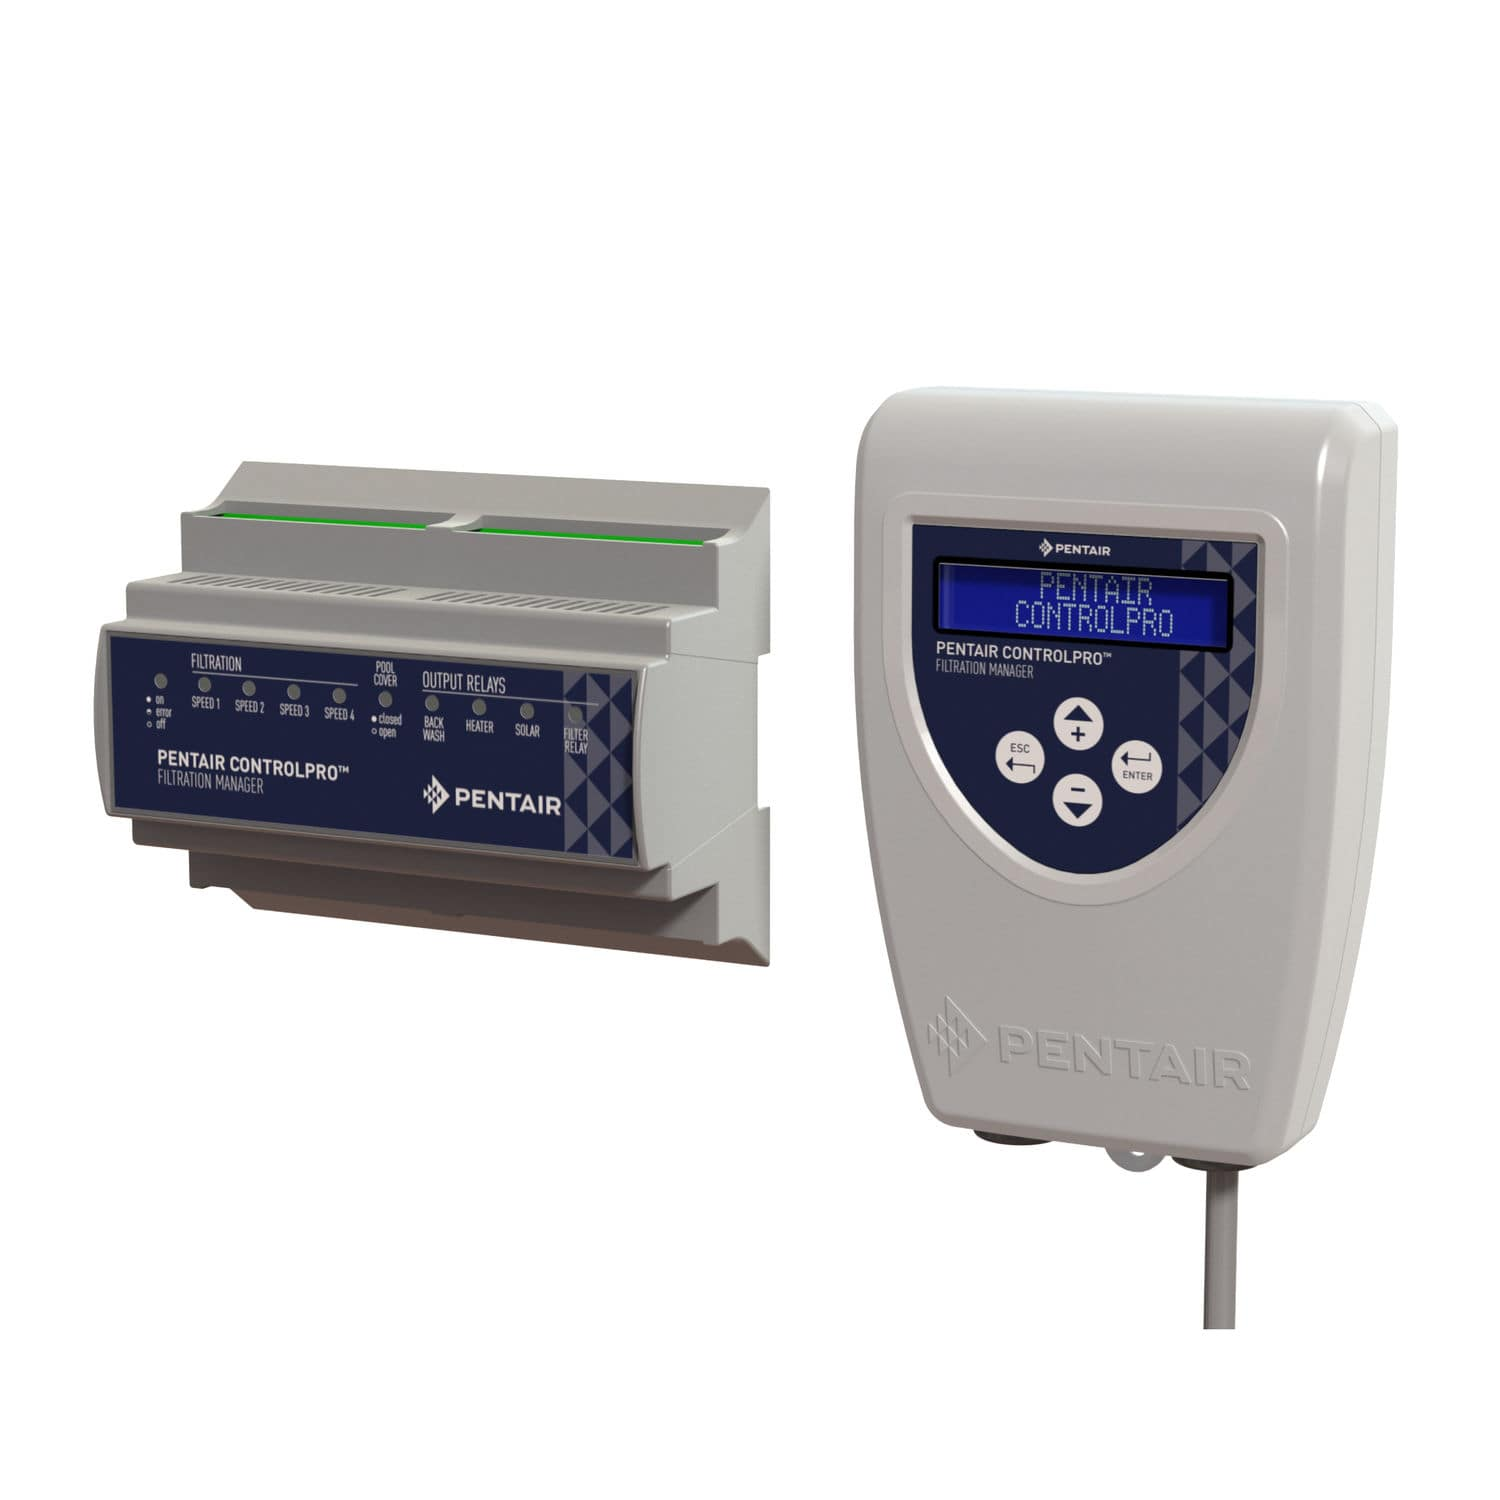 Swimming Pool Home Automation System Pentair Controlpro Pentair Aquatic Systems For Filtration Indoor For Domestic Use